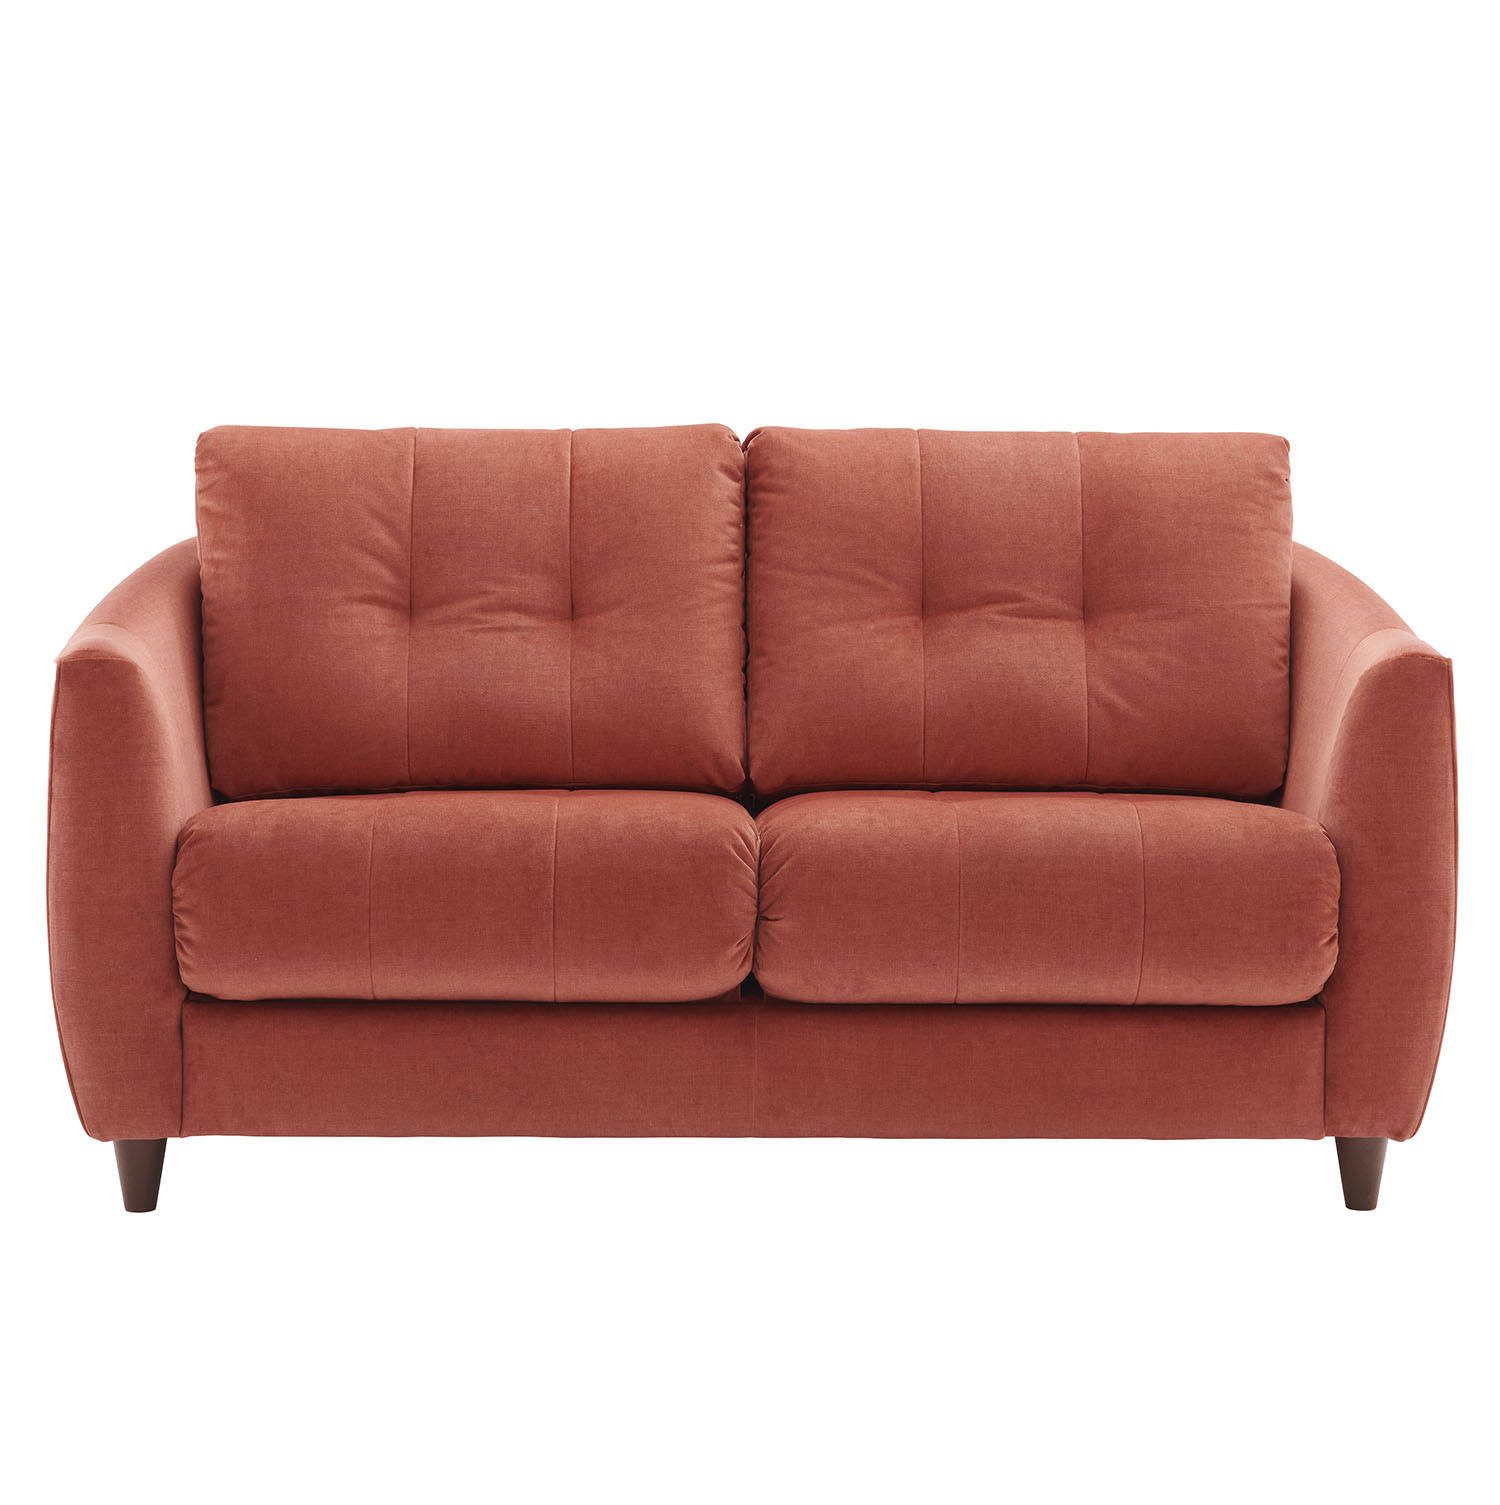 G Plan Nancy Small Sofa LHF